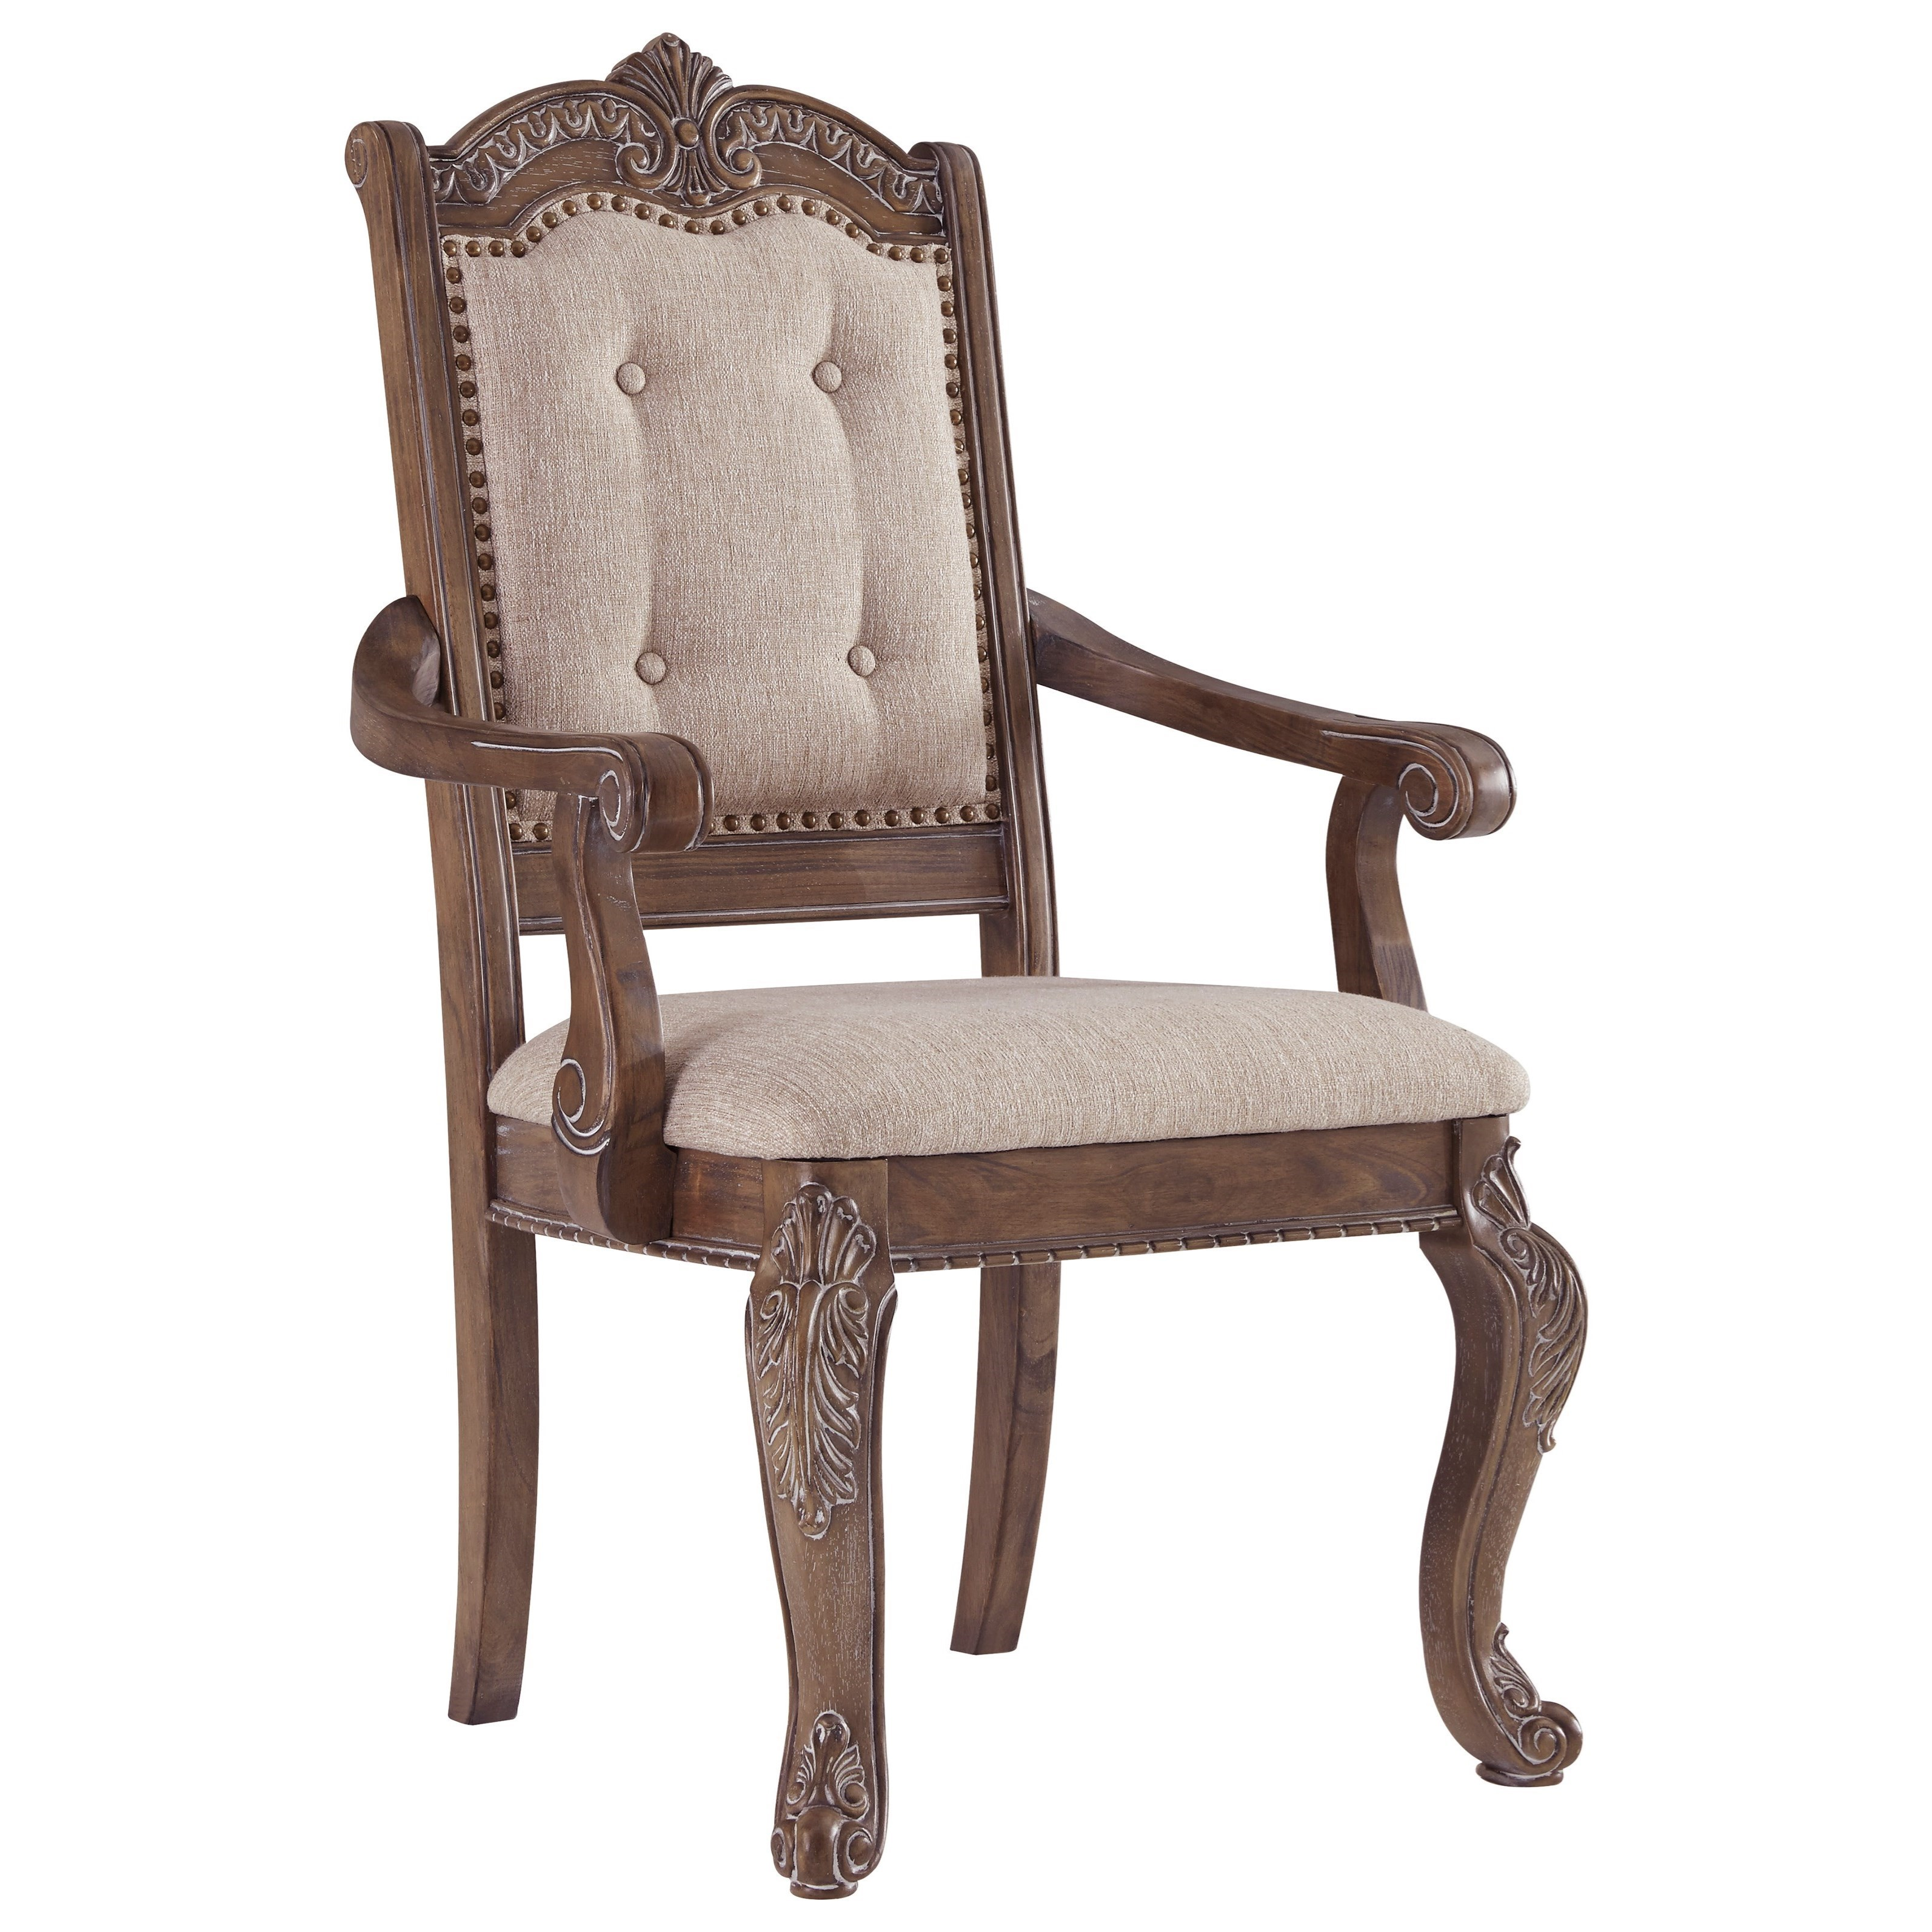 Charmond Traditional Dining Upholstered Arm Chair With Ornate Details By  Signature Design By Ashley At Rotmans